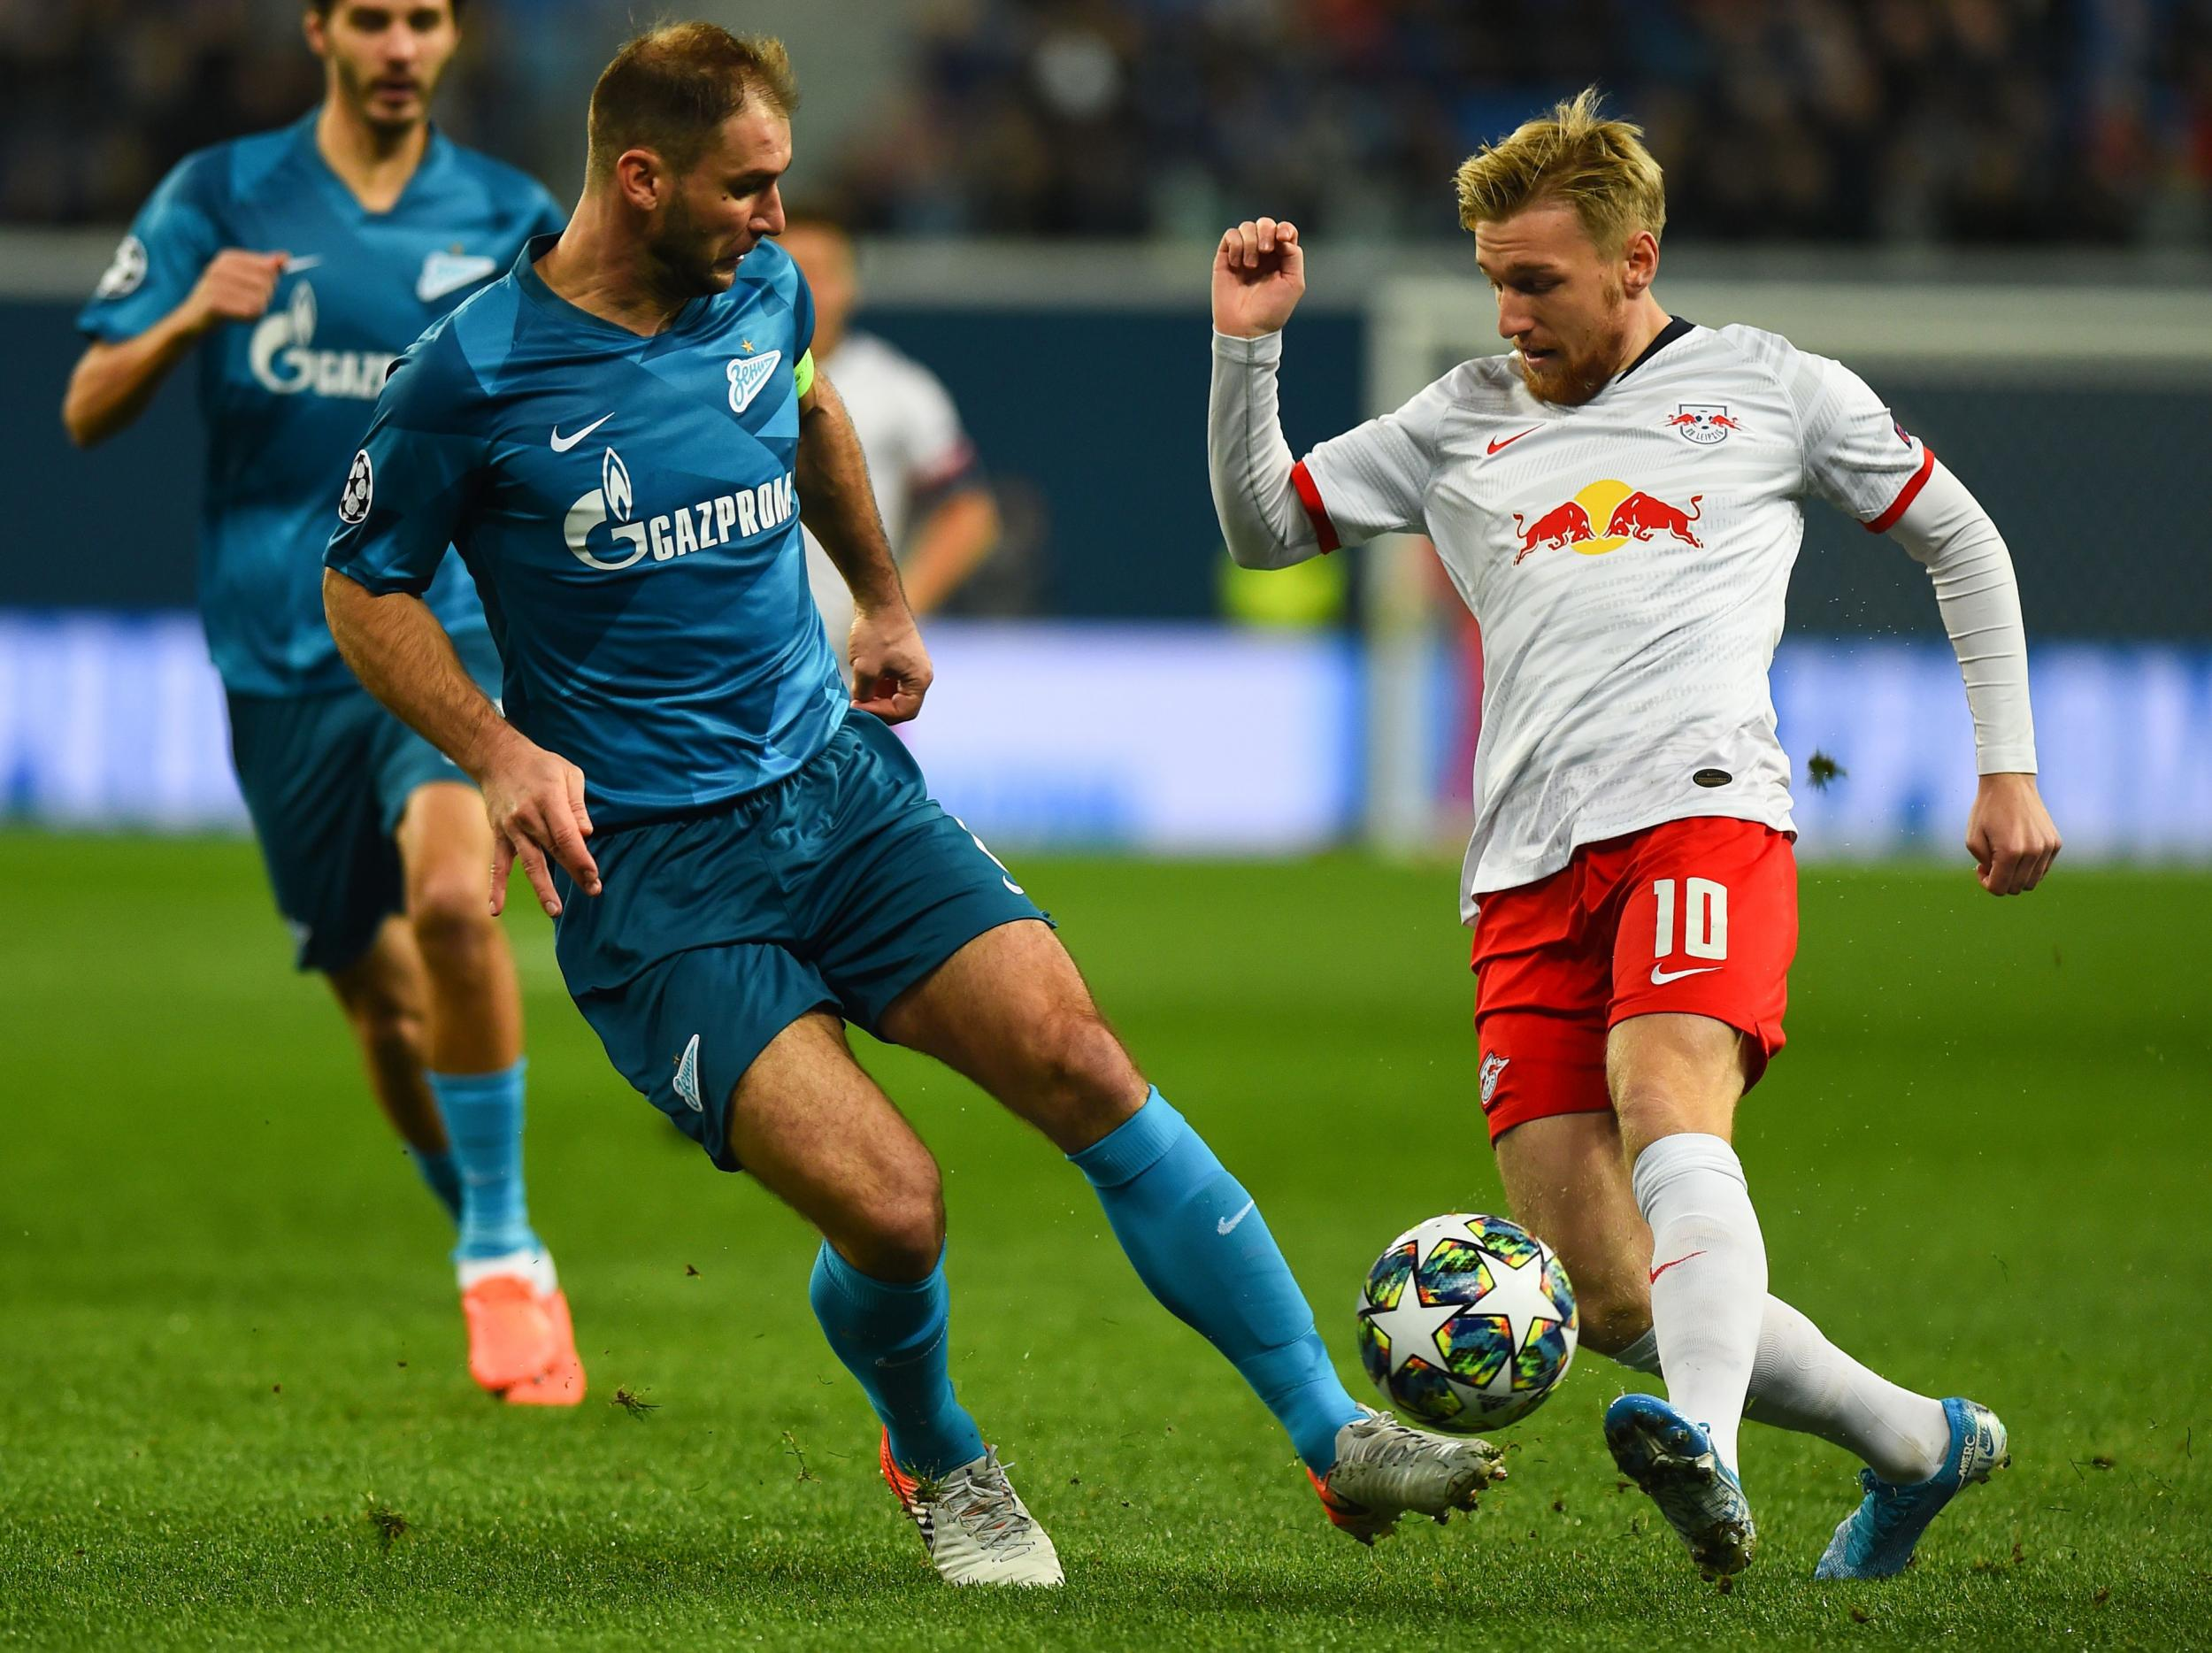 Zenit vs RB Leipzig LIVE: Result and latest reaction from Champions League clash in Russia